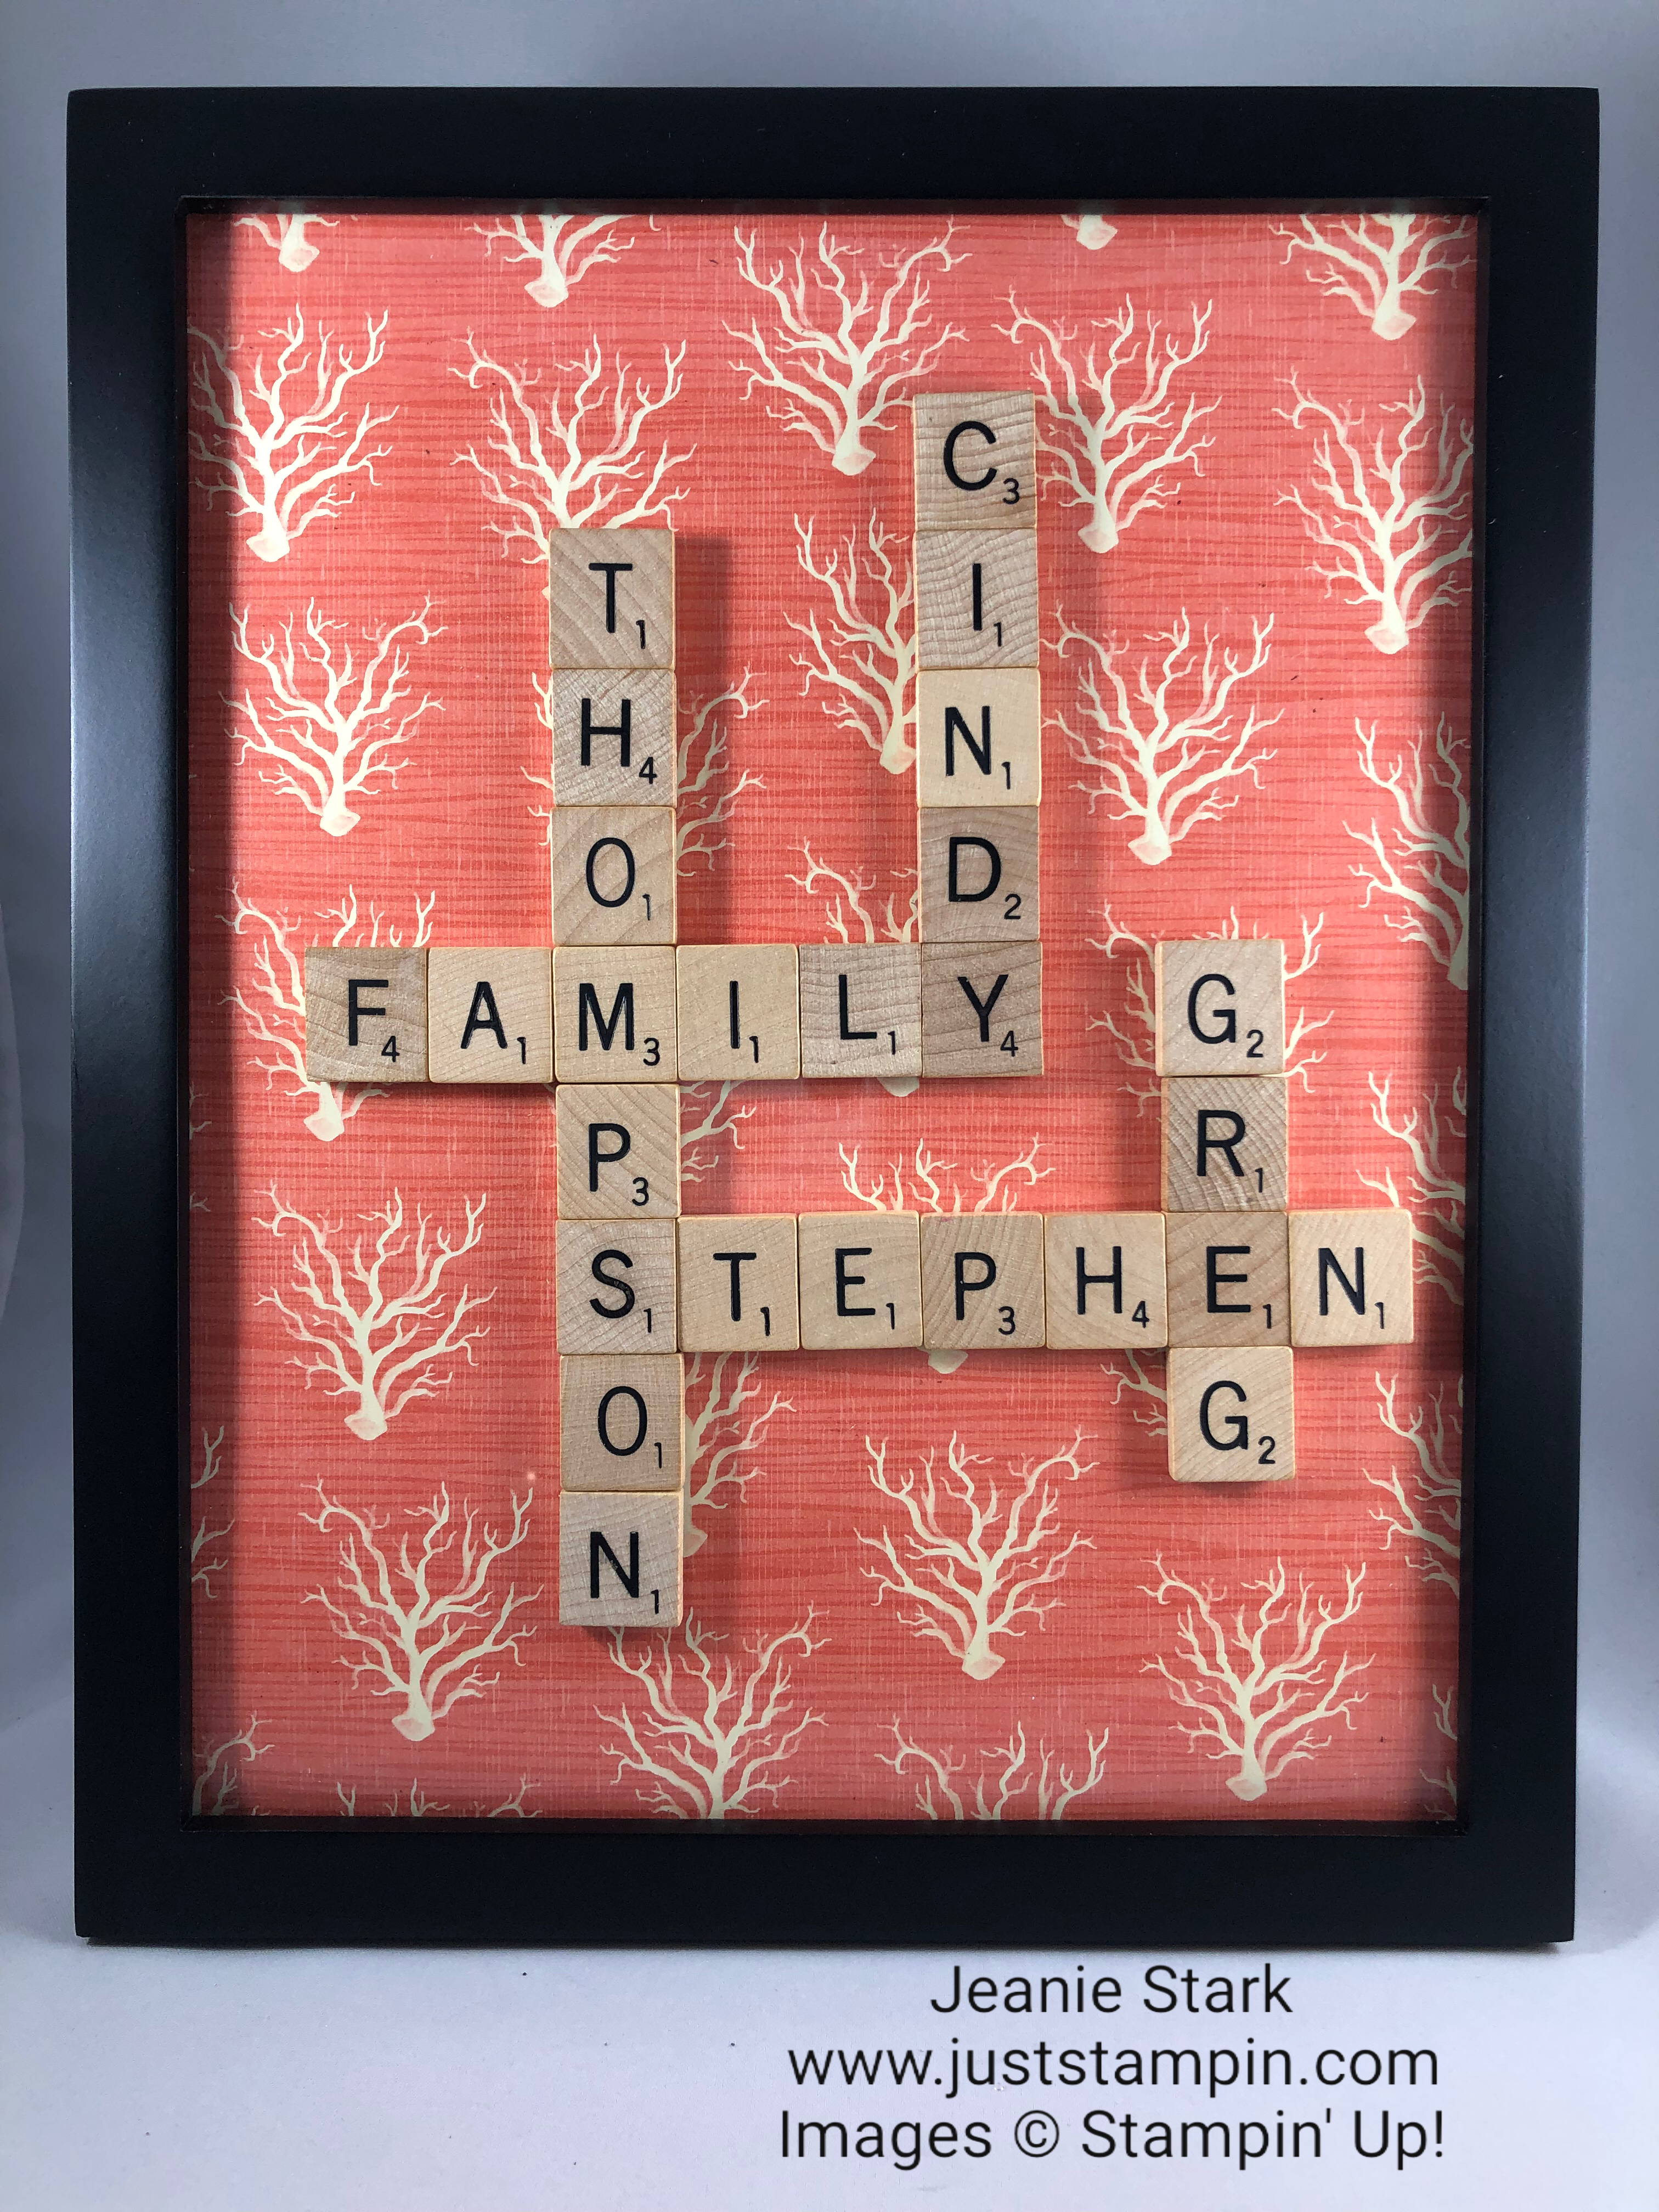 Stampin Up Designer Series Paper family gift idea - Jeanie Stark StampinUp